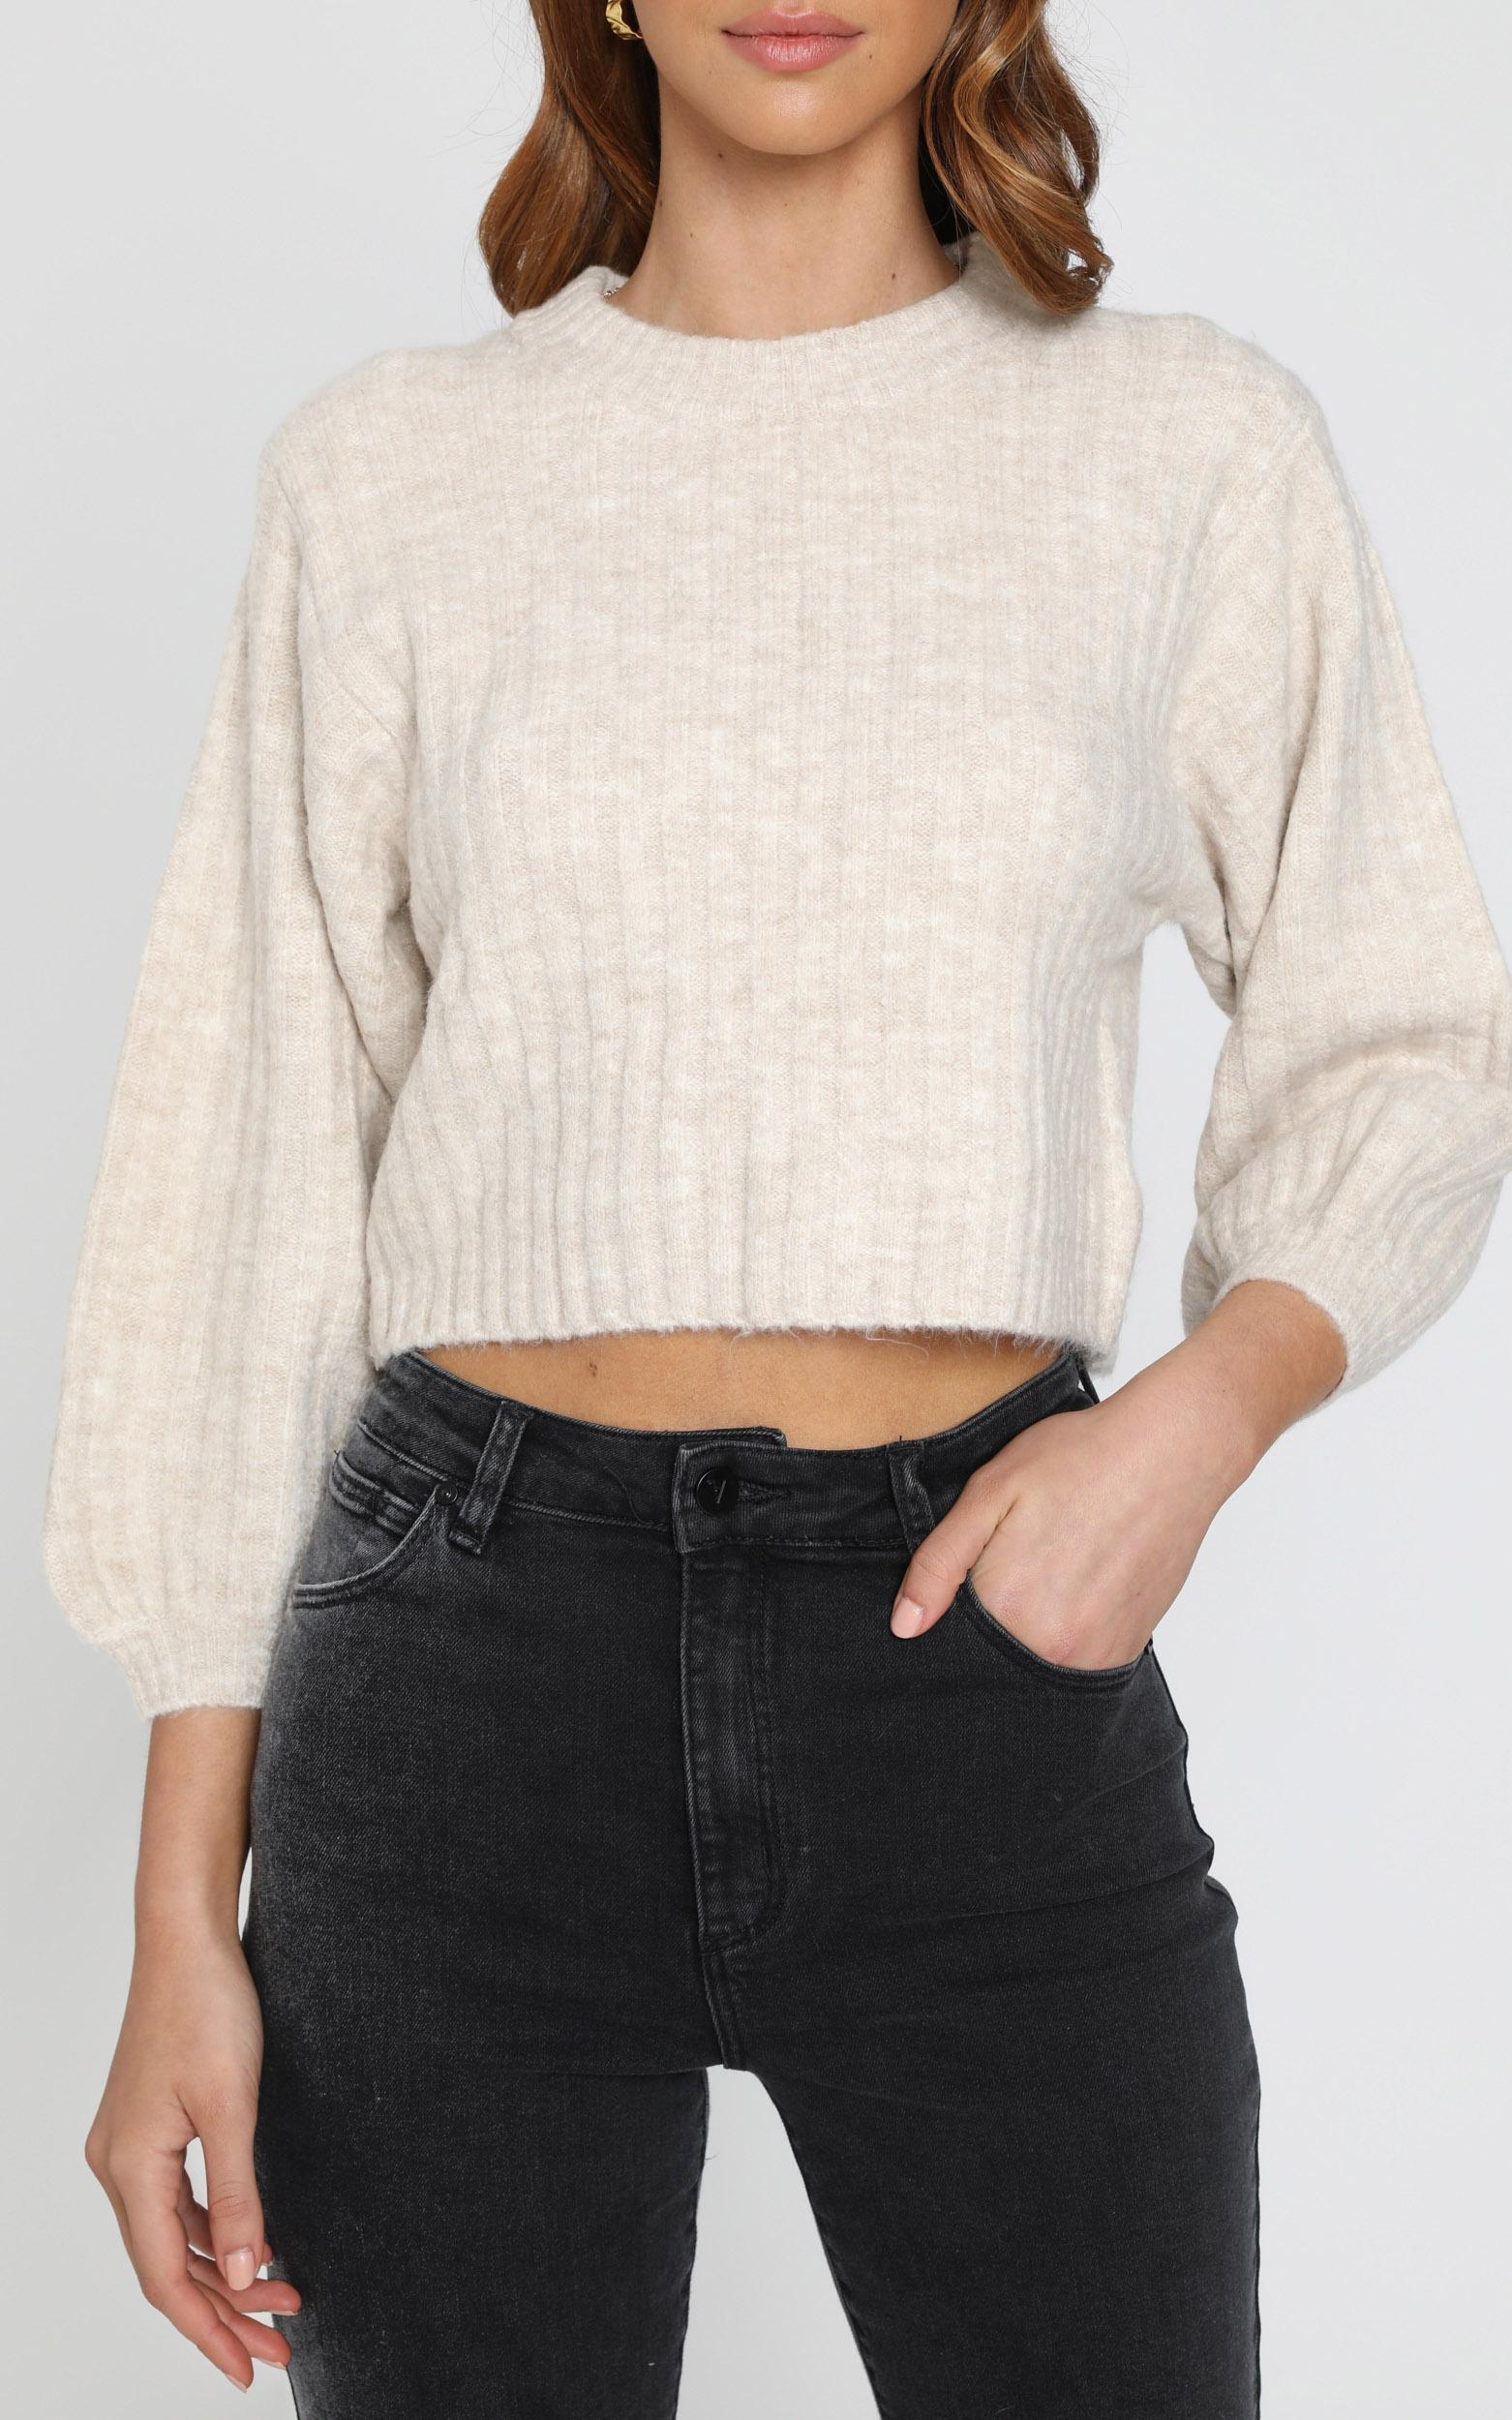 Cute and Cosy Knit Jumper in Beige Marl - S/M, Beige, hi-res image number null